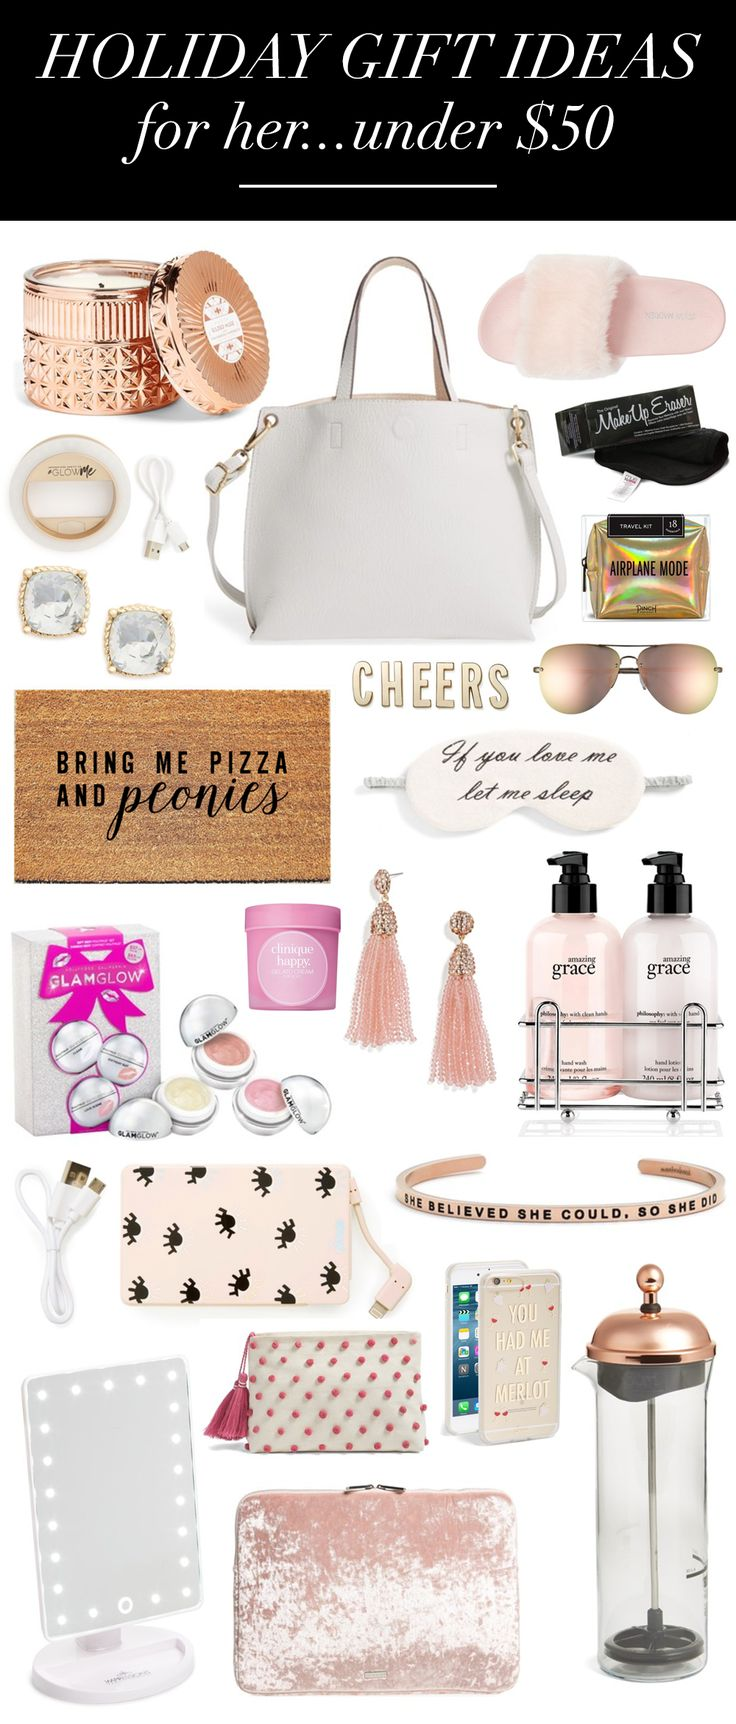 Gifts For Her Under 50 Christmas gift ideas, For her